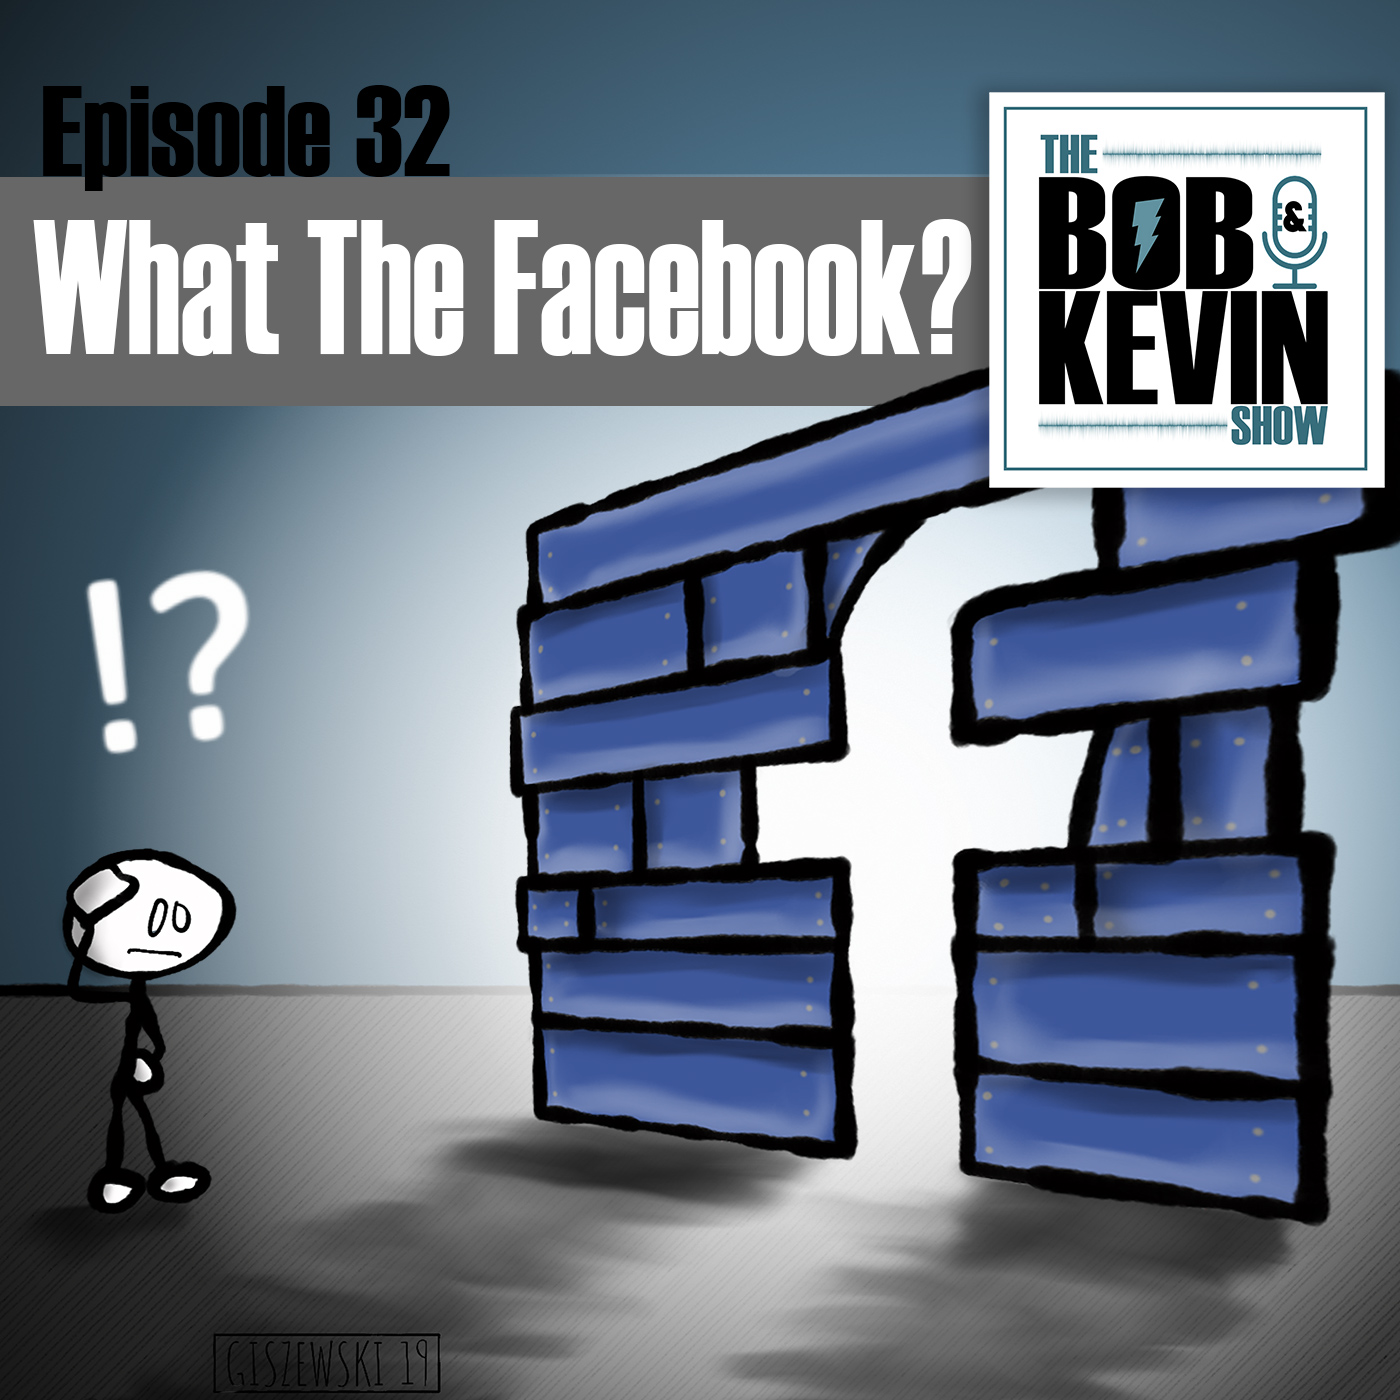 Ep. 032 - WTF: What the Facebook? Bob & Kevin discuss Facebook and their plain text password issues and Apple TV+